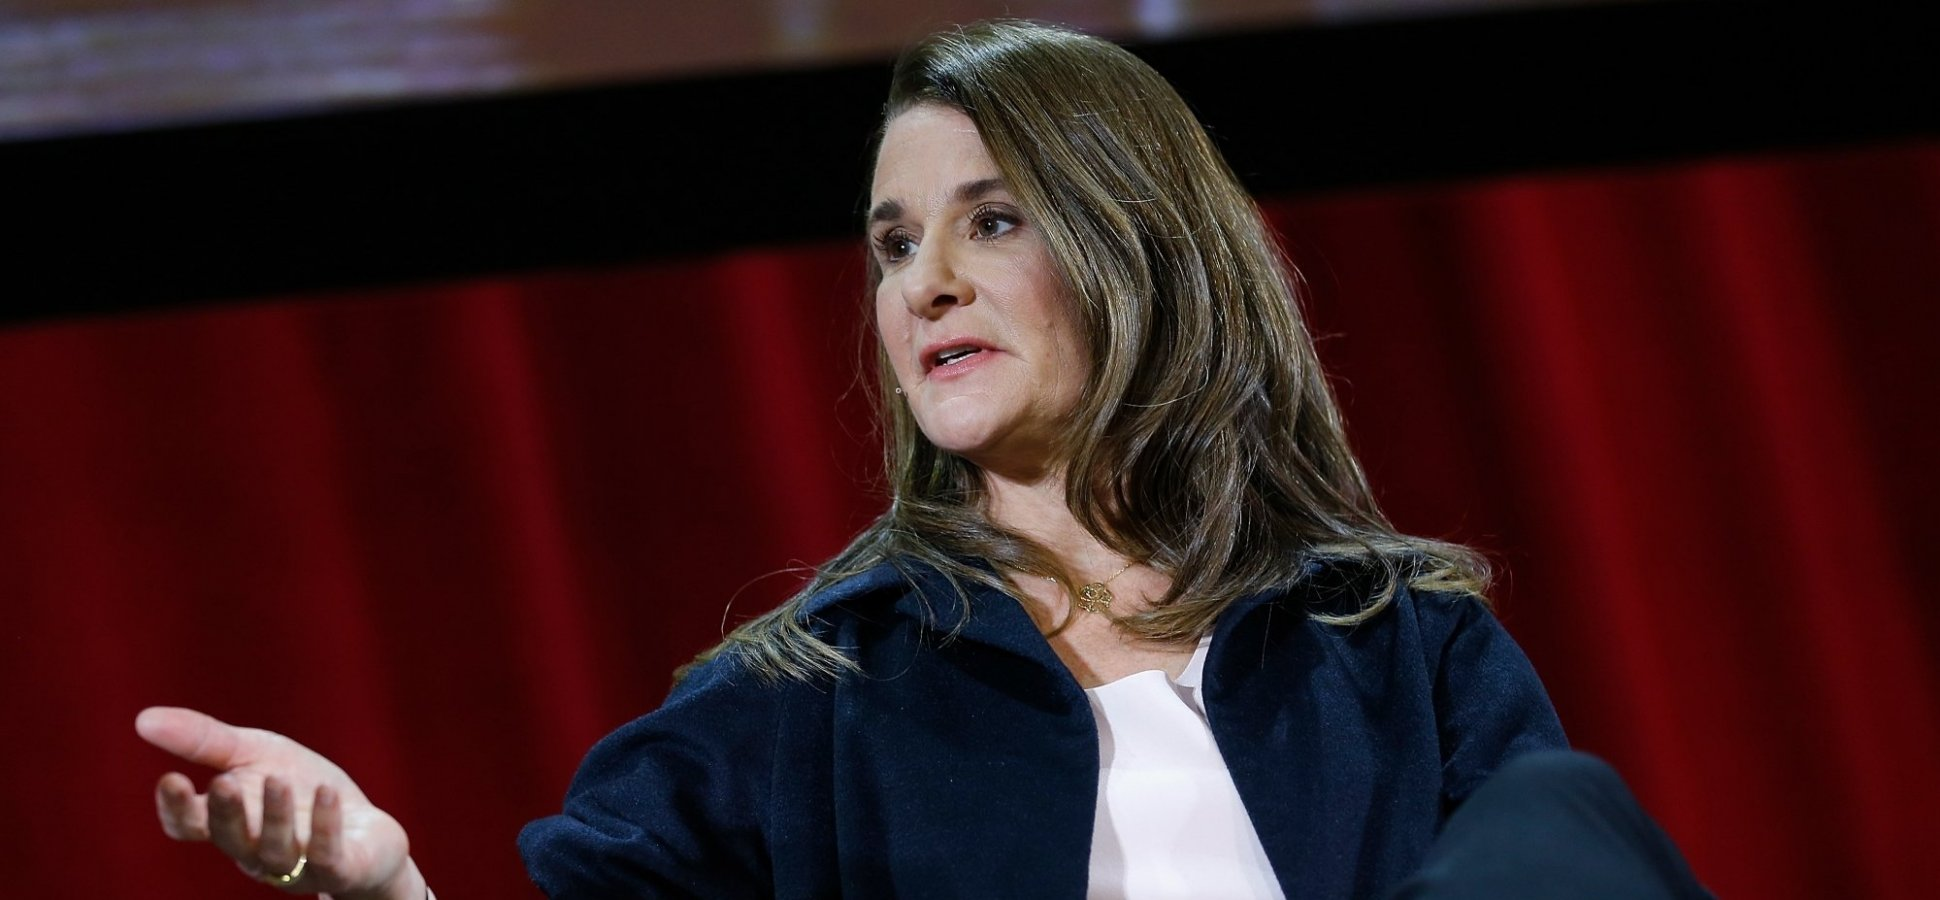 In 4 Words, Billionaire Melinda Gates Gives What May be the Best Career Advice Out There